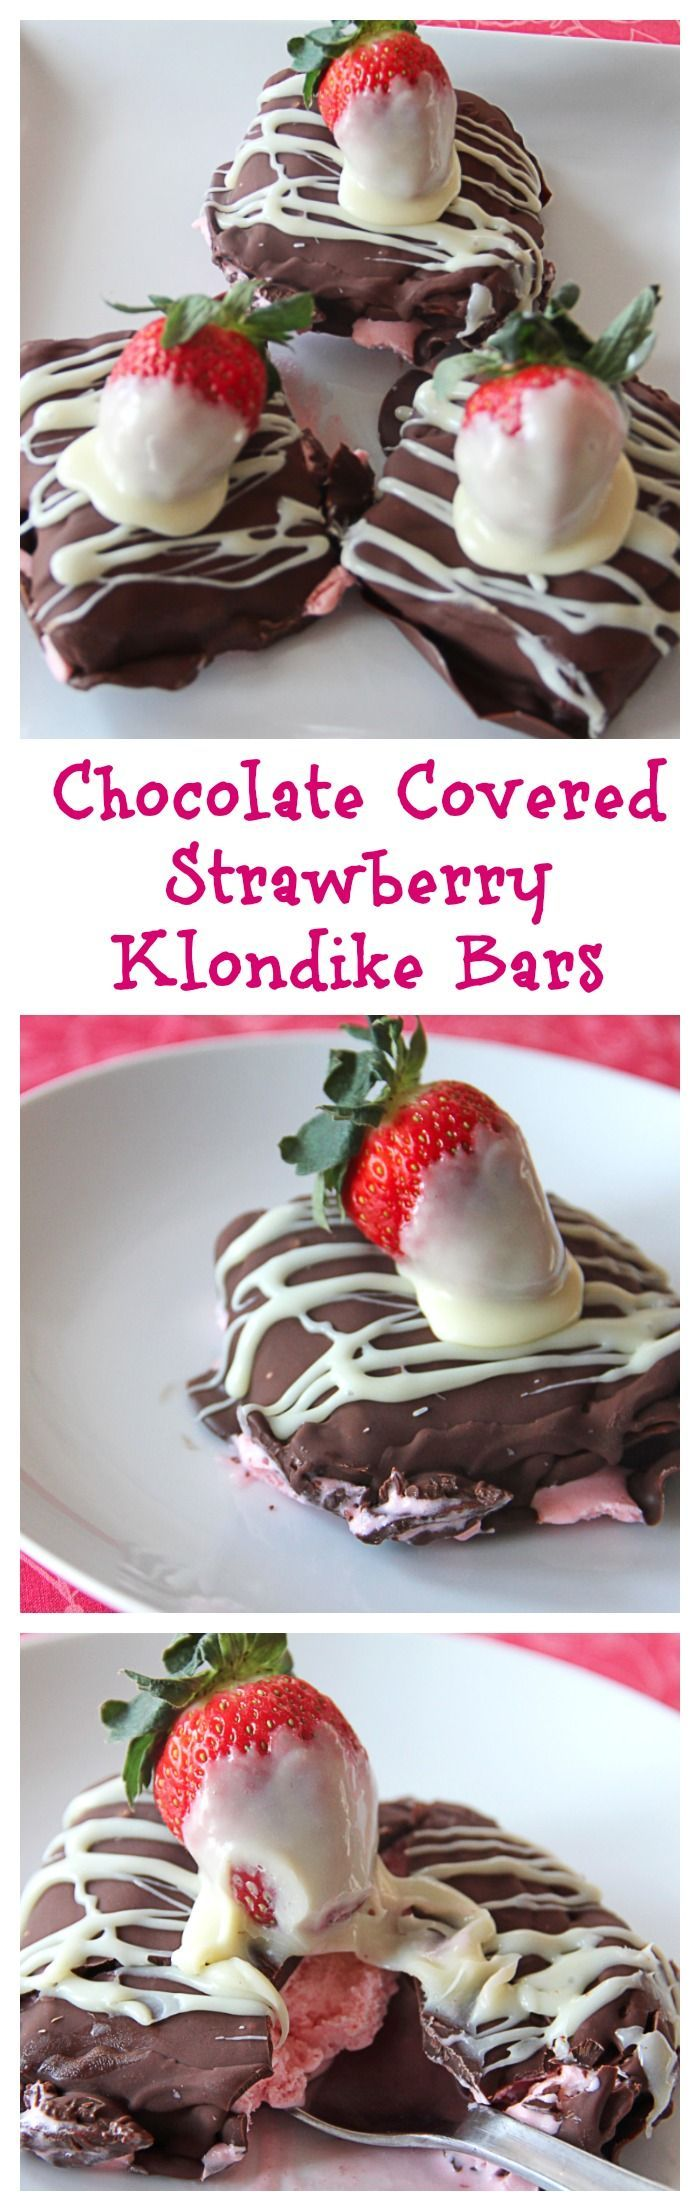 Chocolate Covered Strawberry Klondike Bars | Grandbaby Cakes